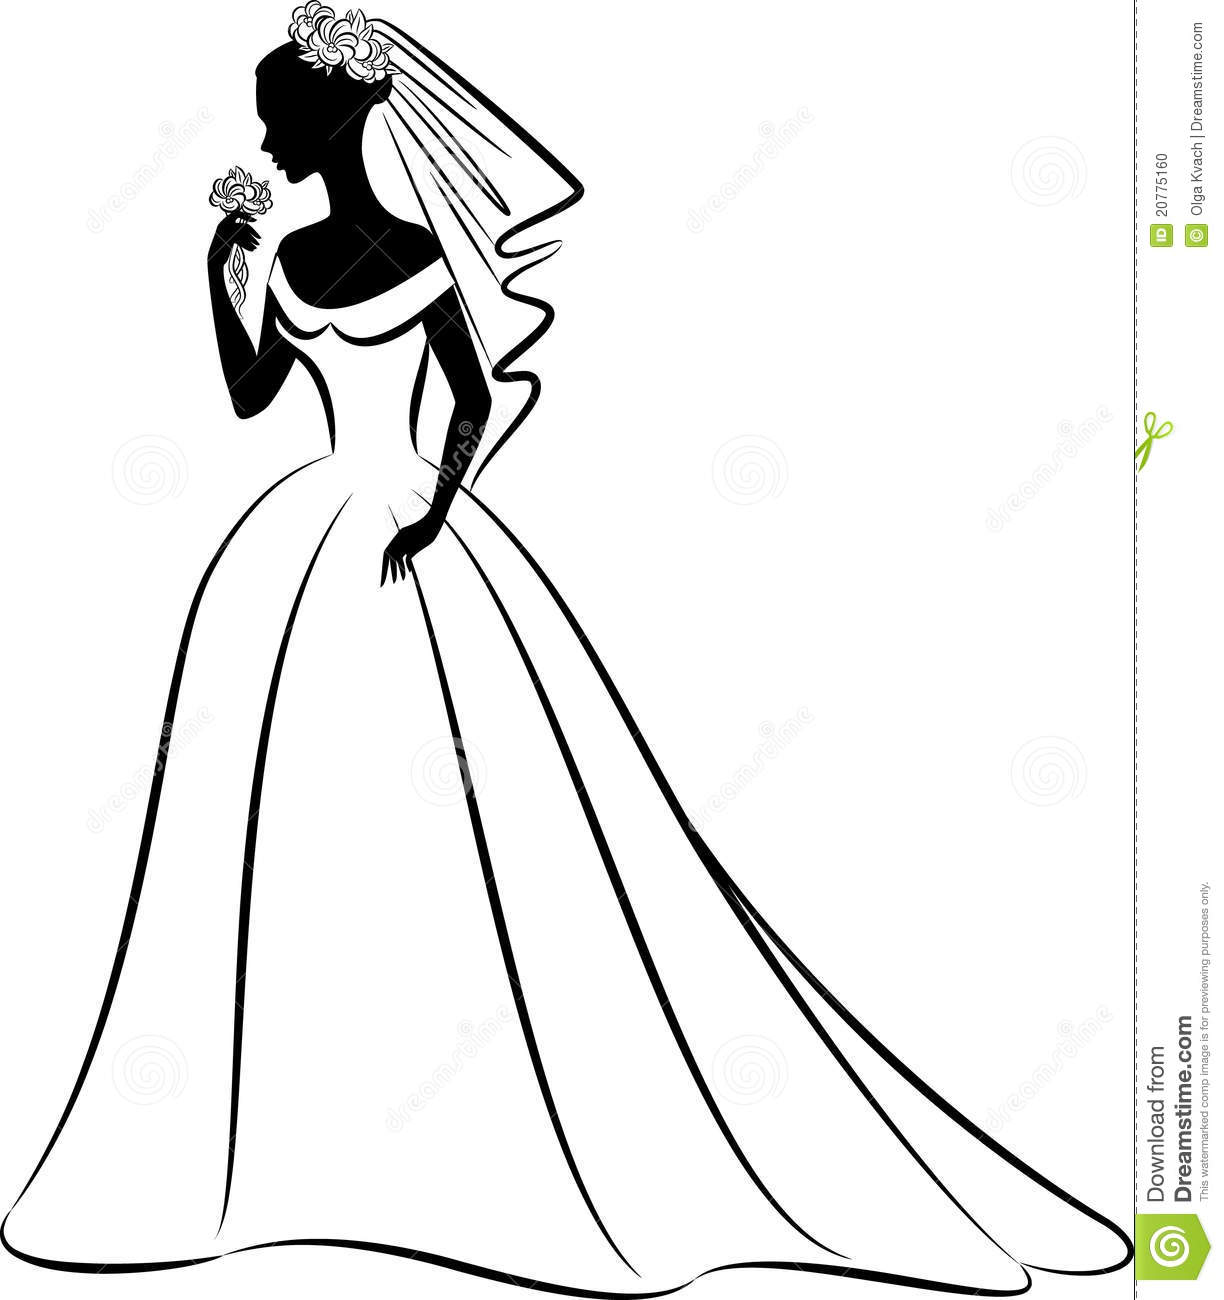 1646 Wedding Dress free clipart.